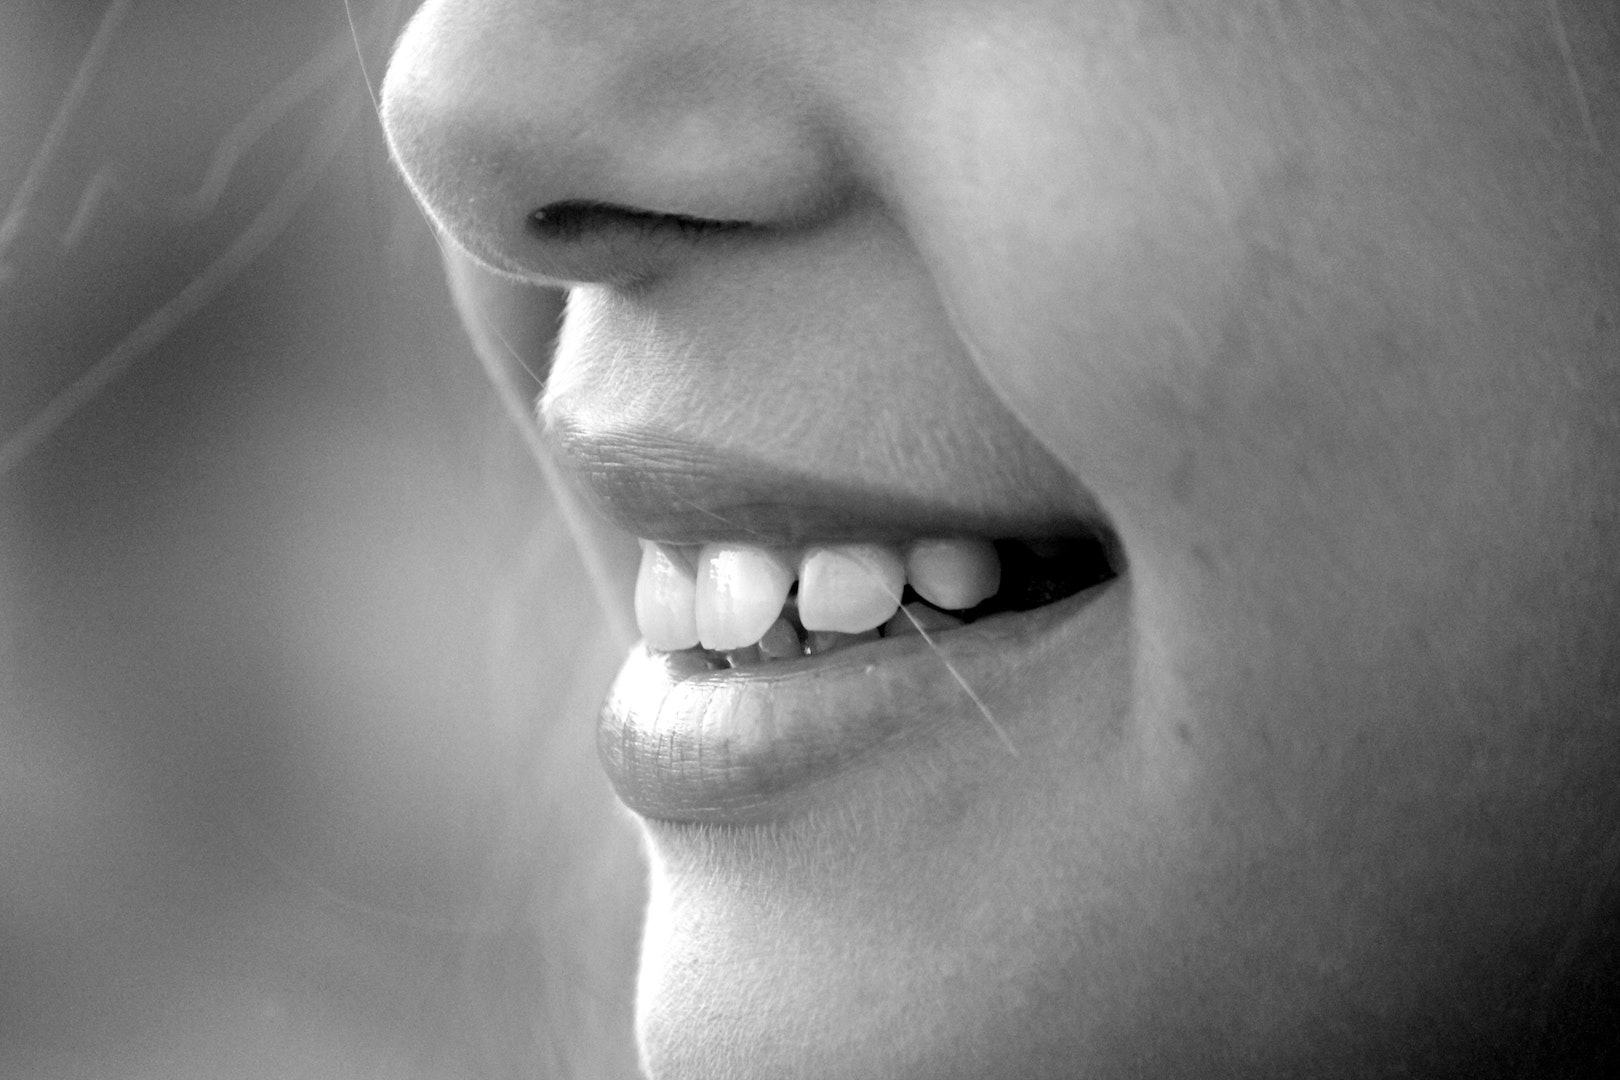 Should You Get Two Teeth Cleanings a Year from a Dentist?